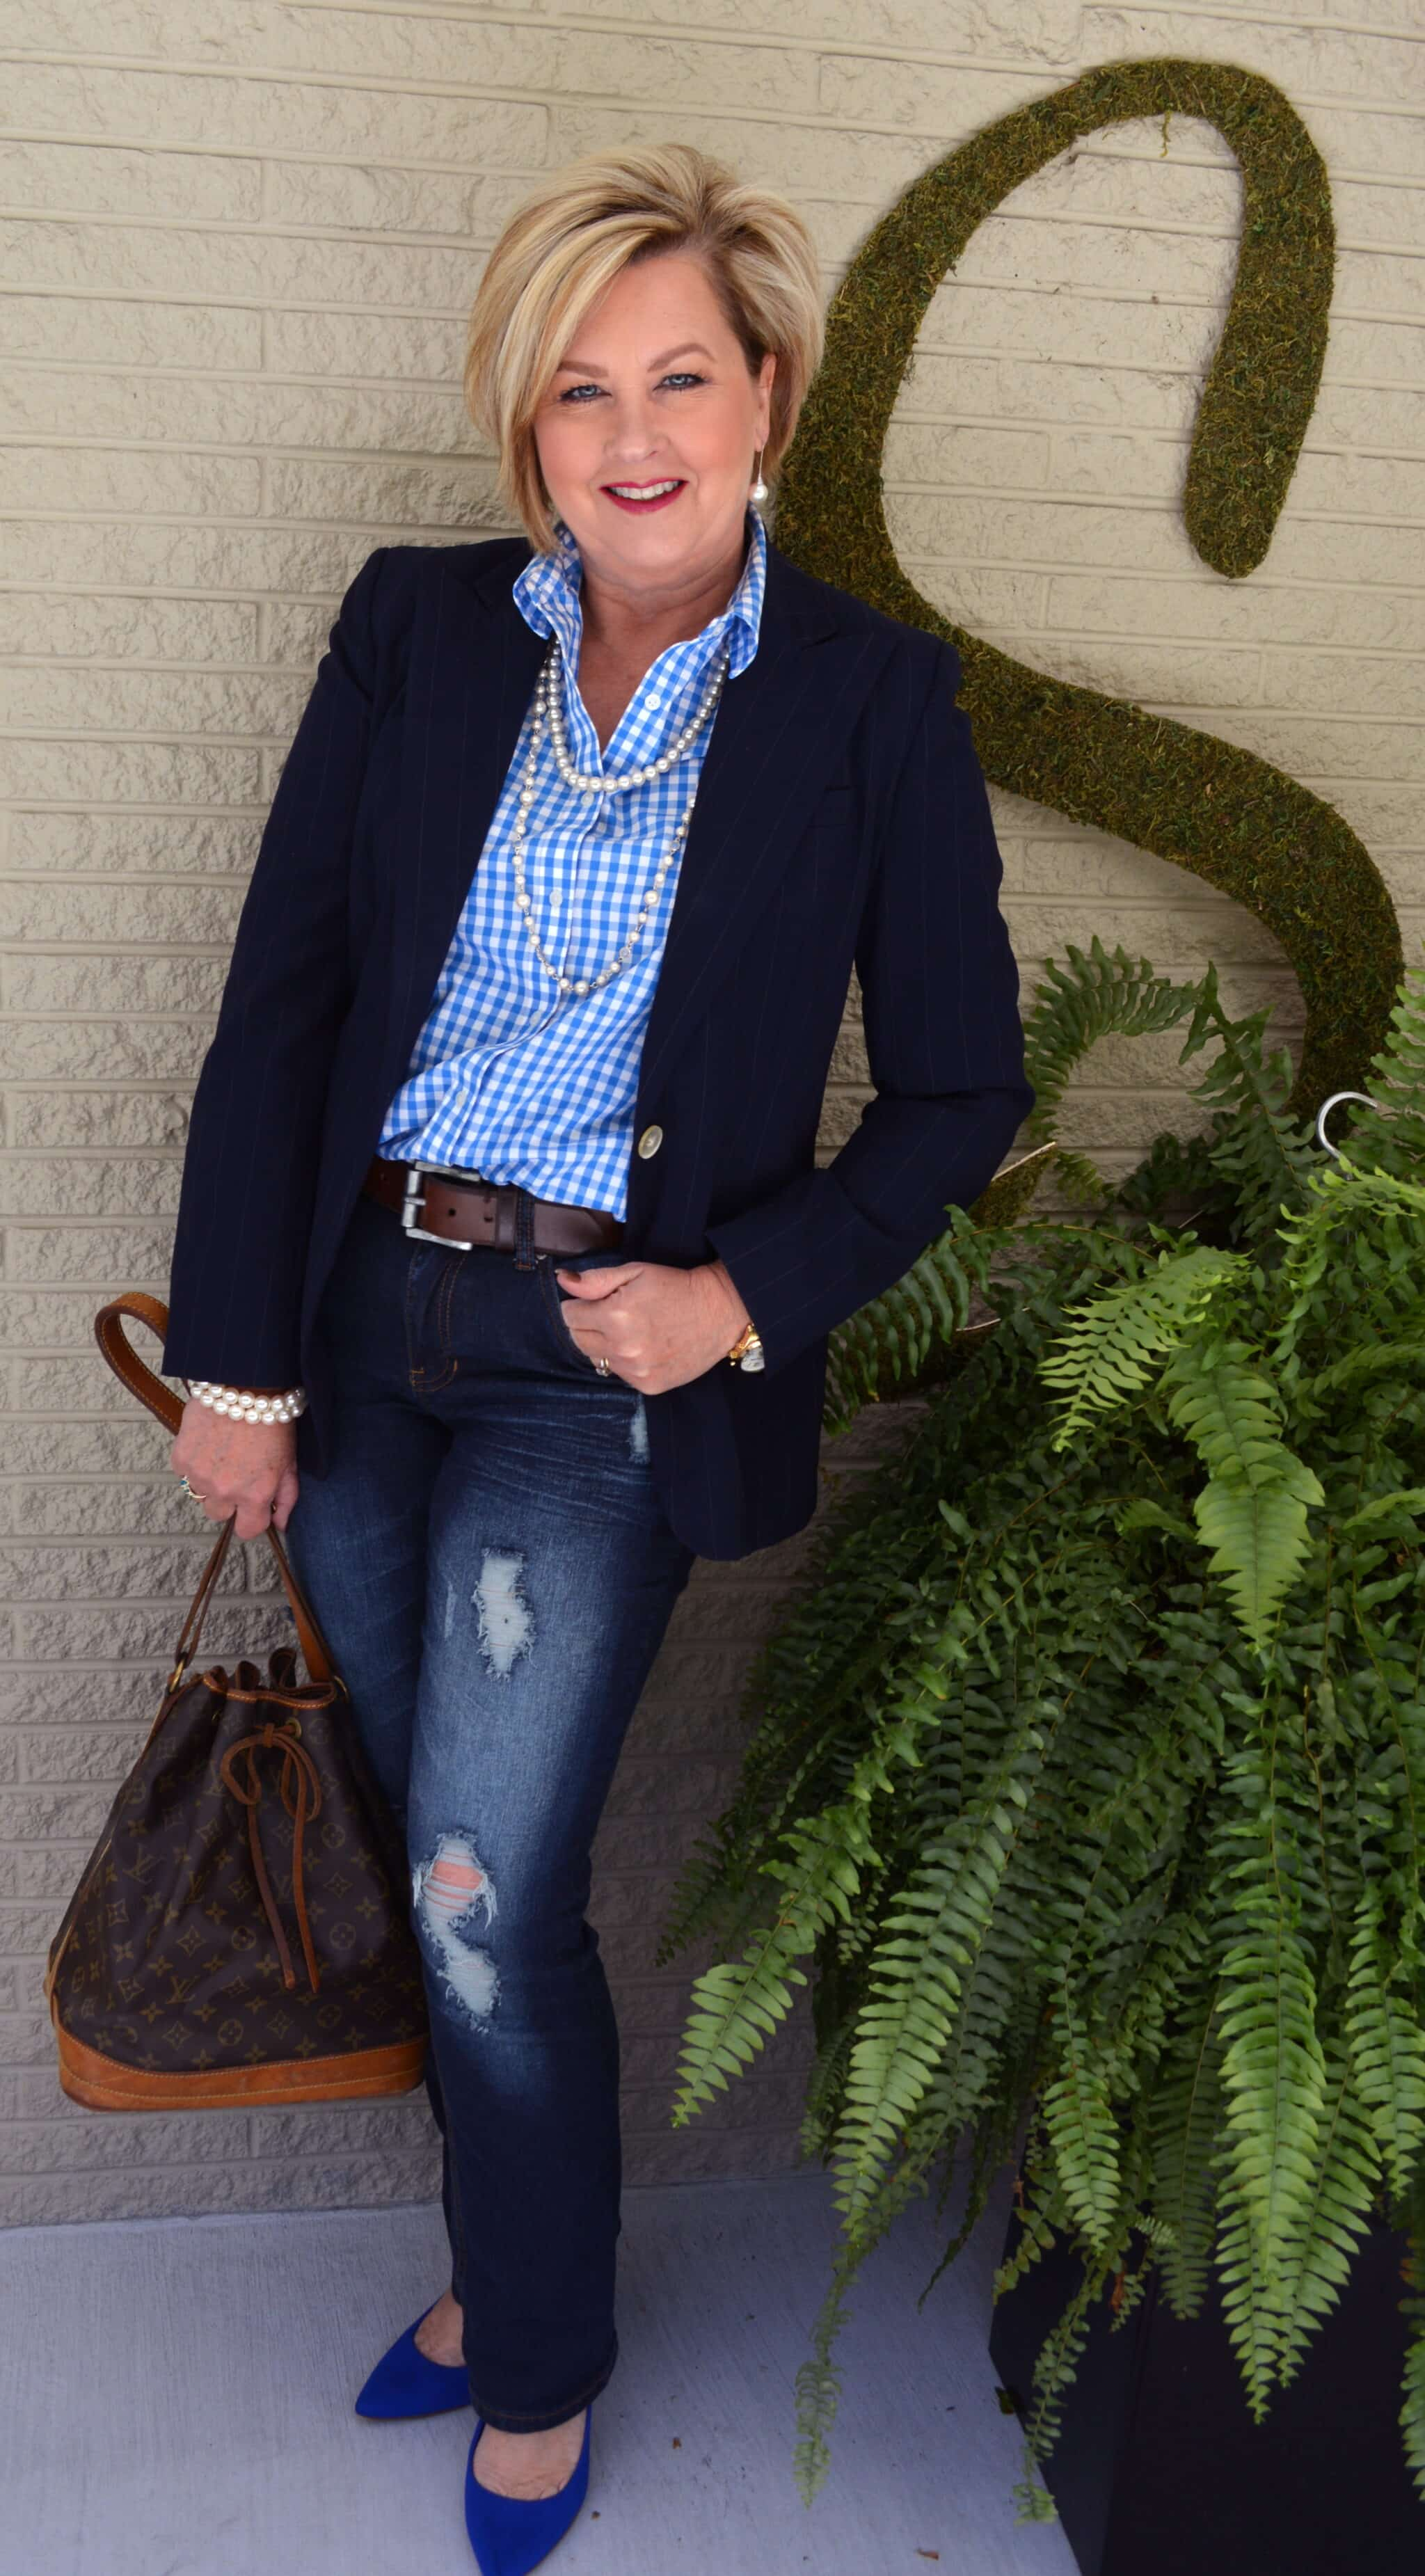 Fashion Blogger 50 Is Not Old in distressed jeans and pearls in 2015